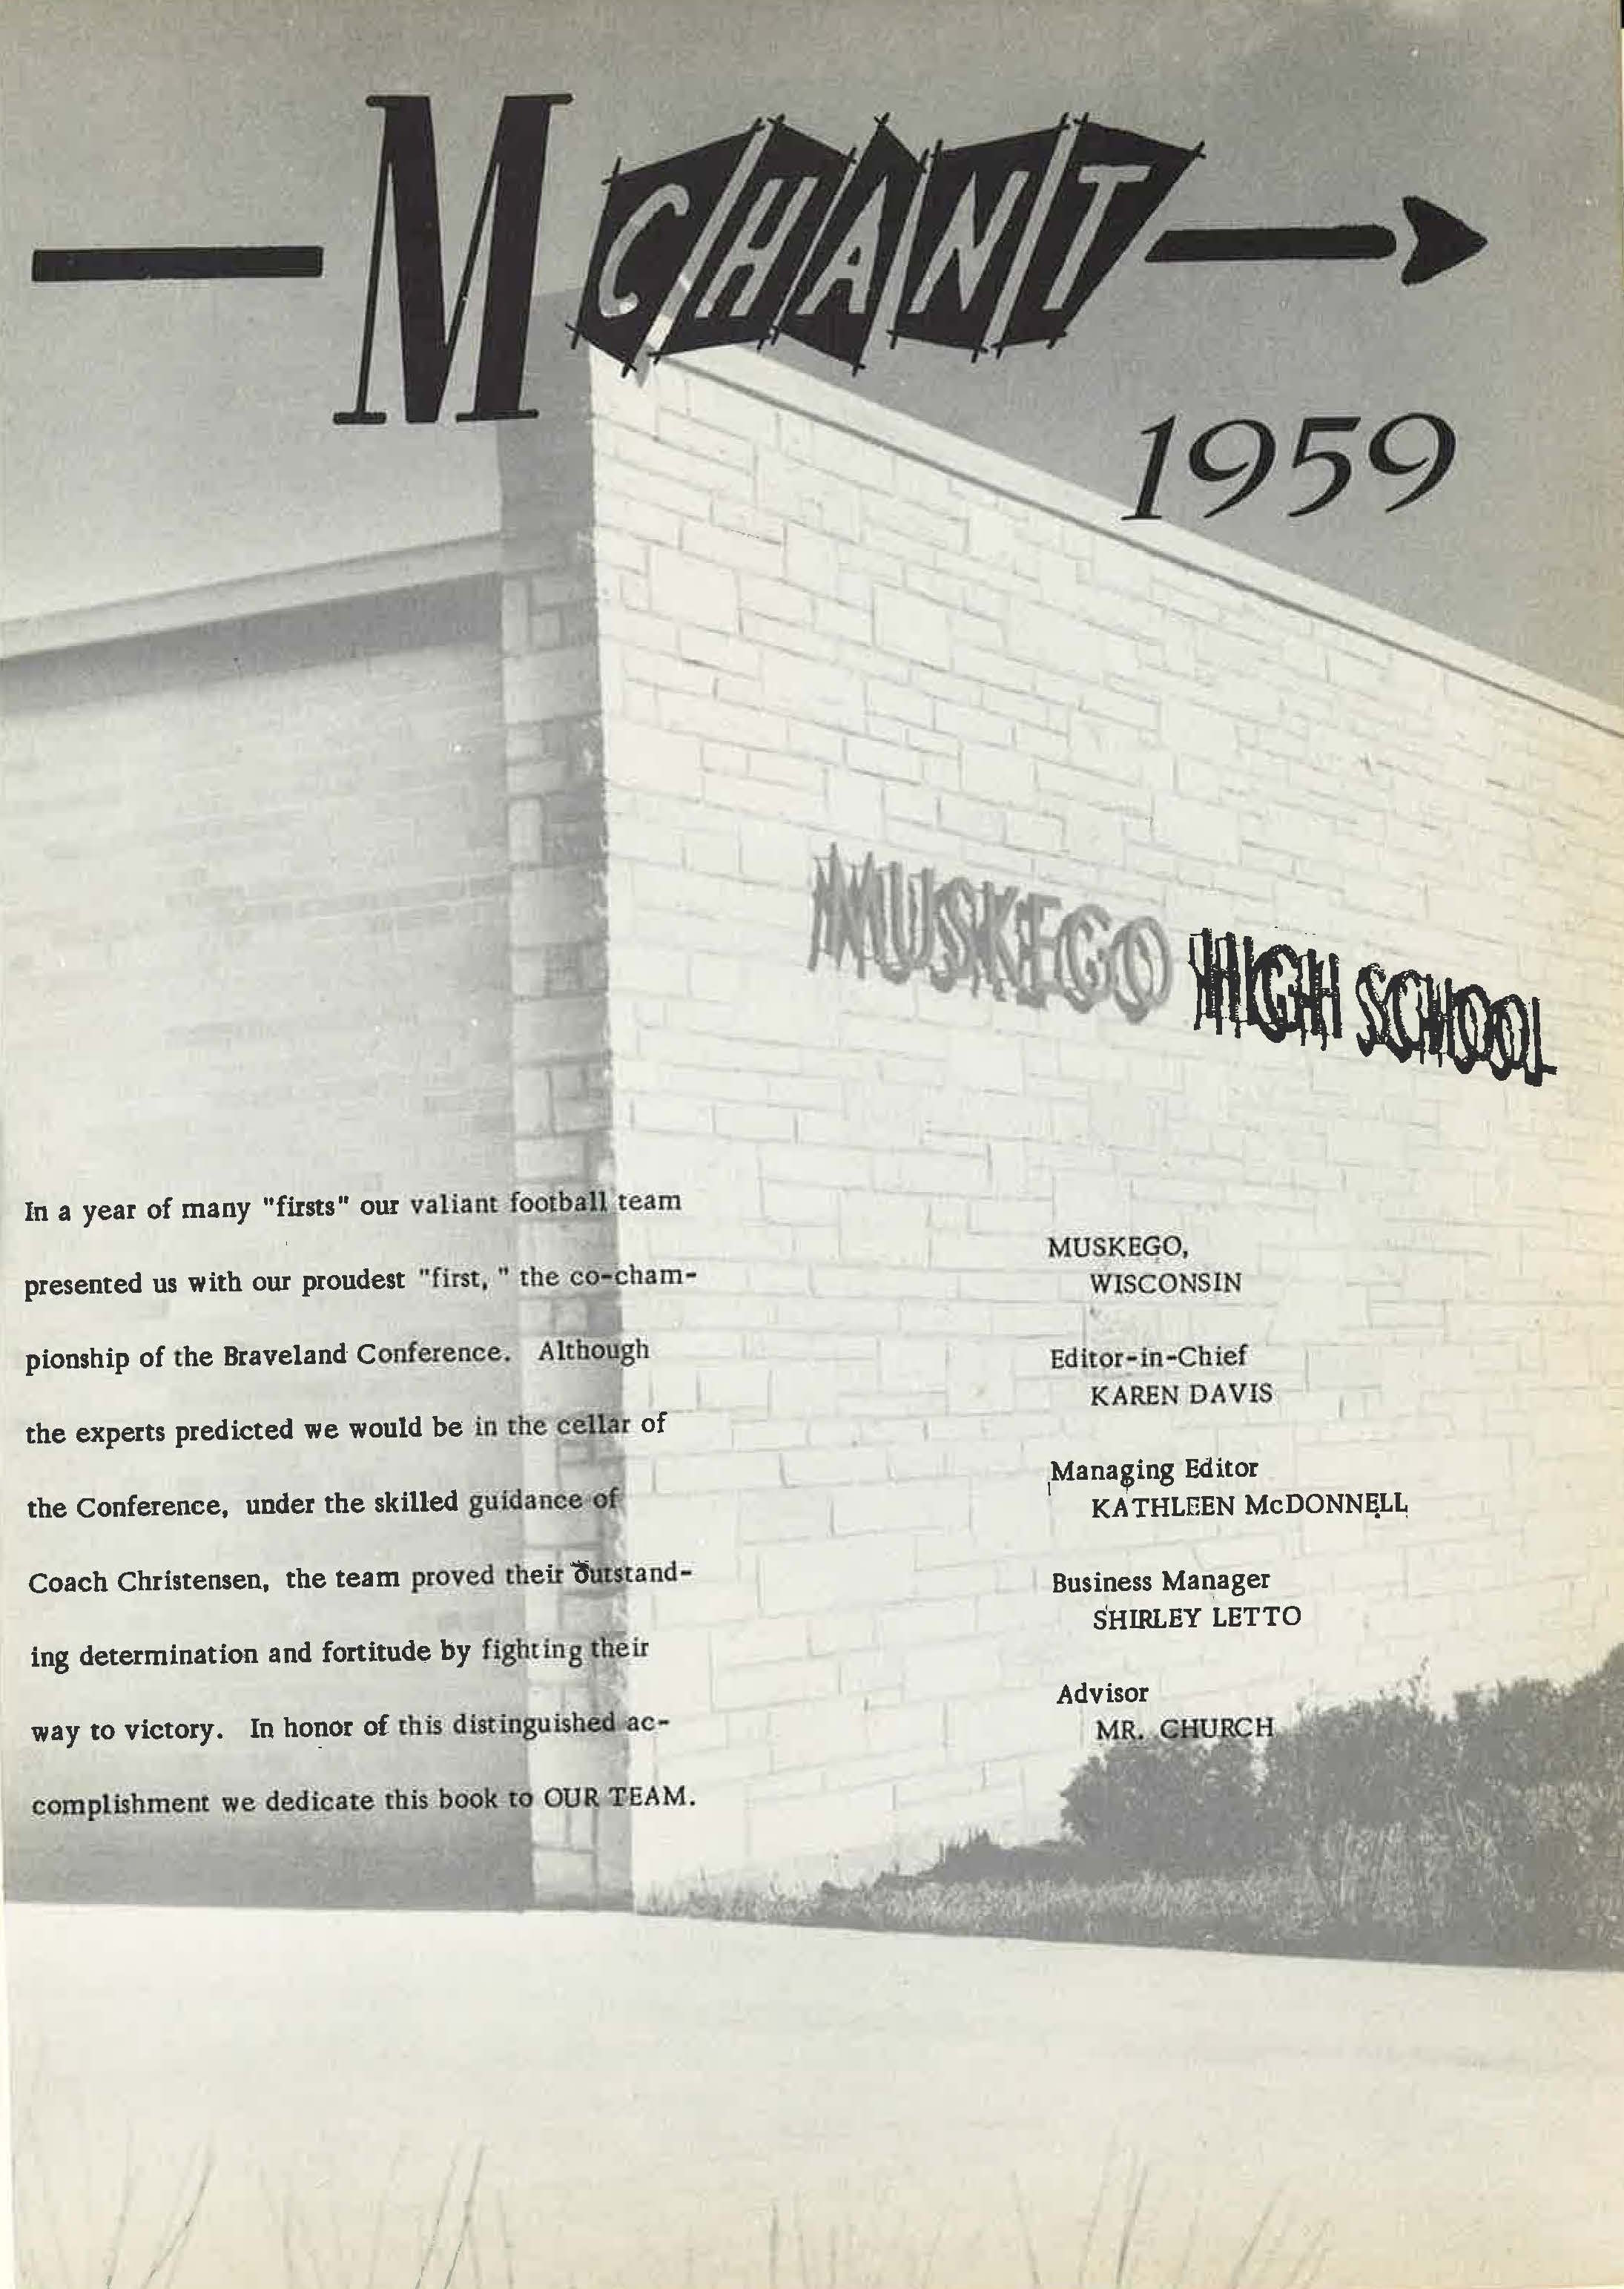 1959_Yearbook_Cover_Sheet.jpg